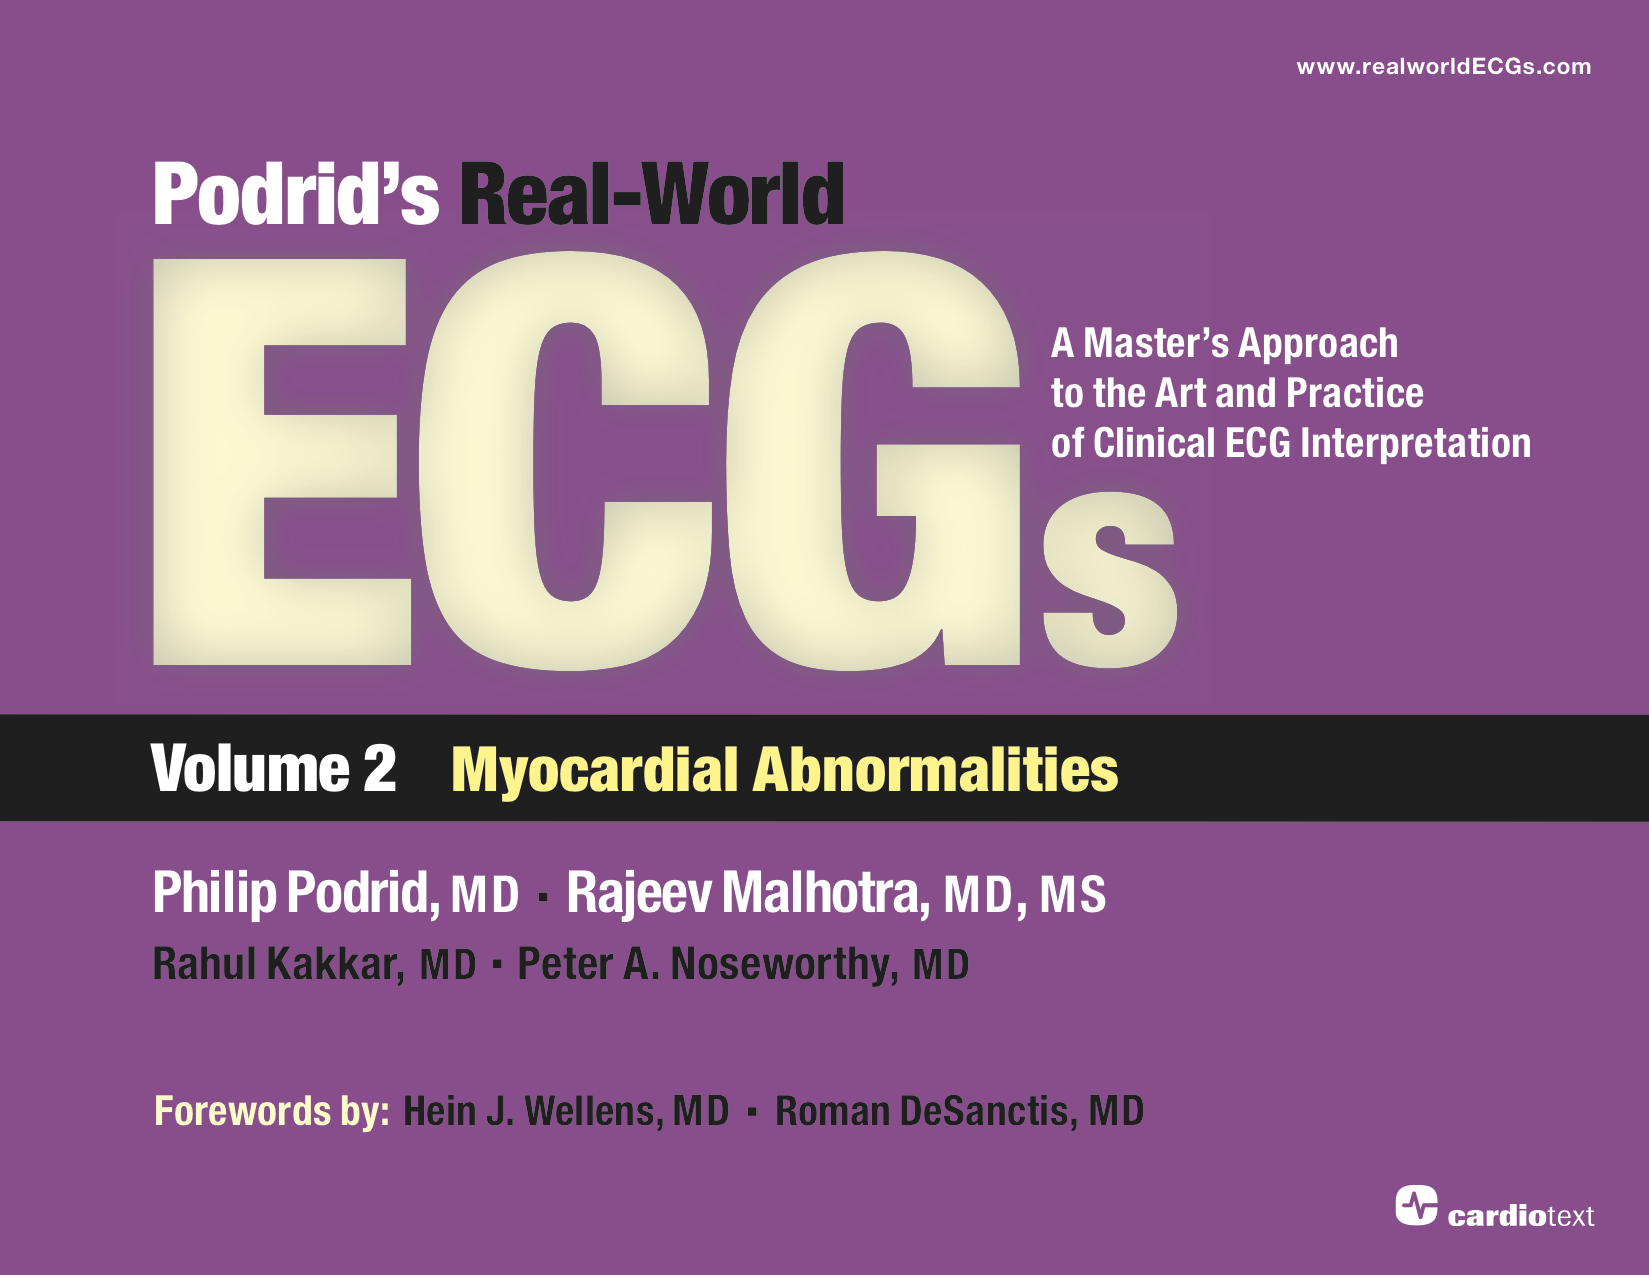 Podrid.v2 Real-World ECGs Myocardial Abnormalities